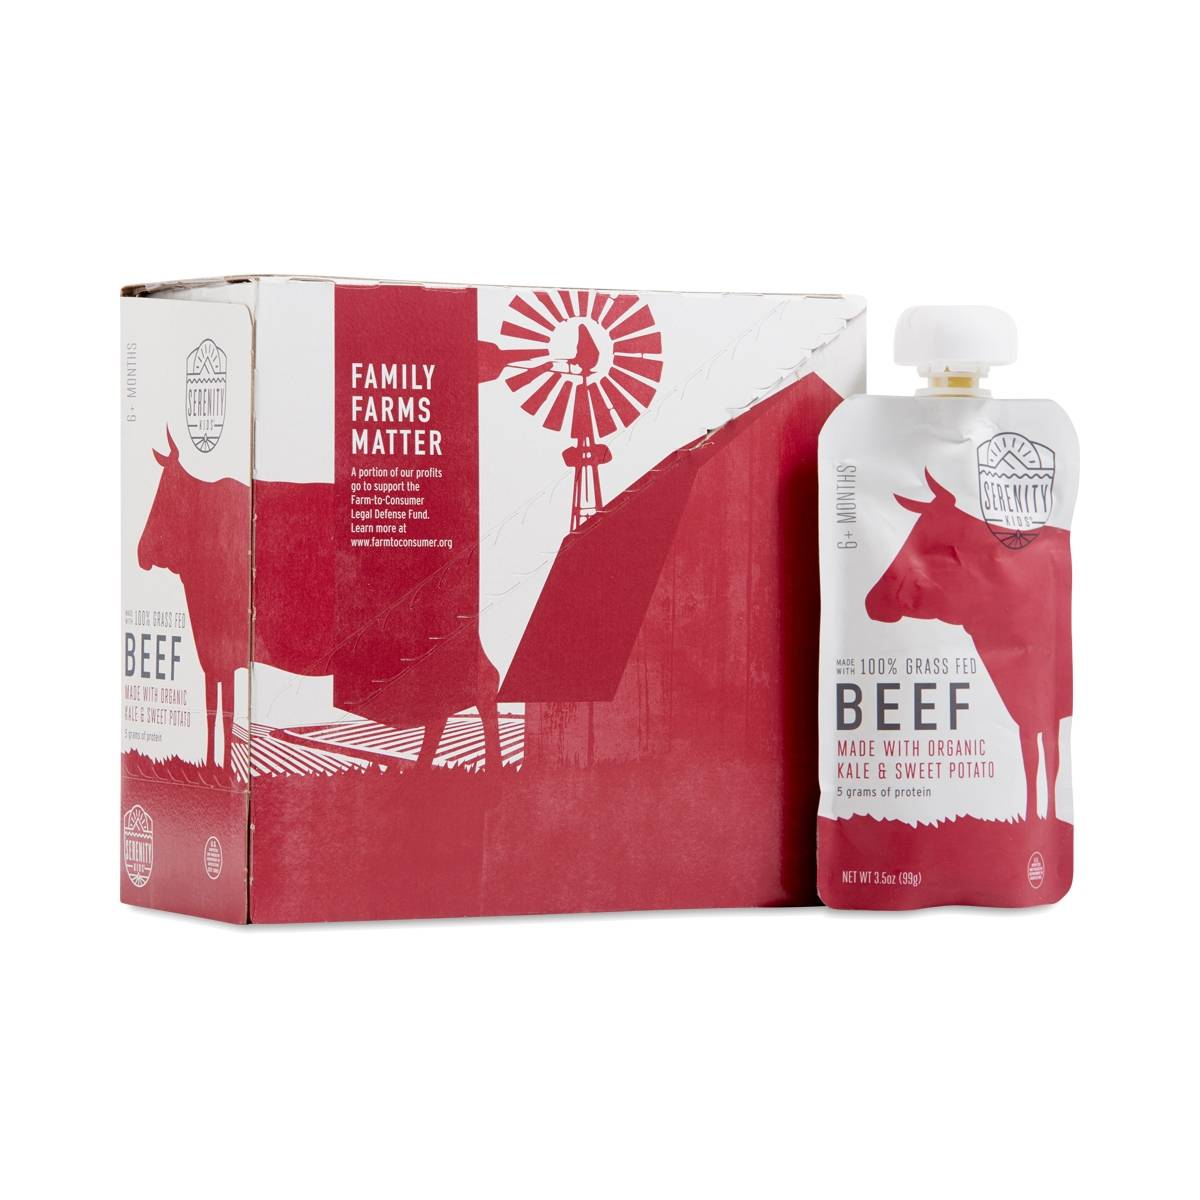 Serenity Kids Grassfed Beef With Organic Kale And Sweet